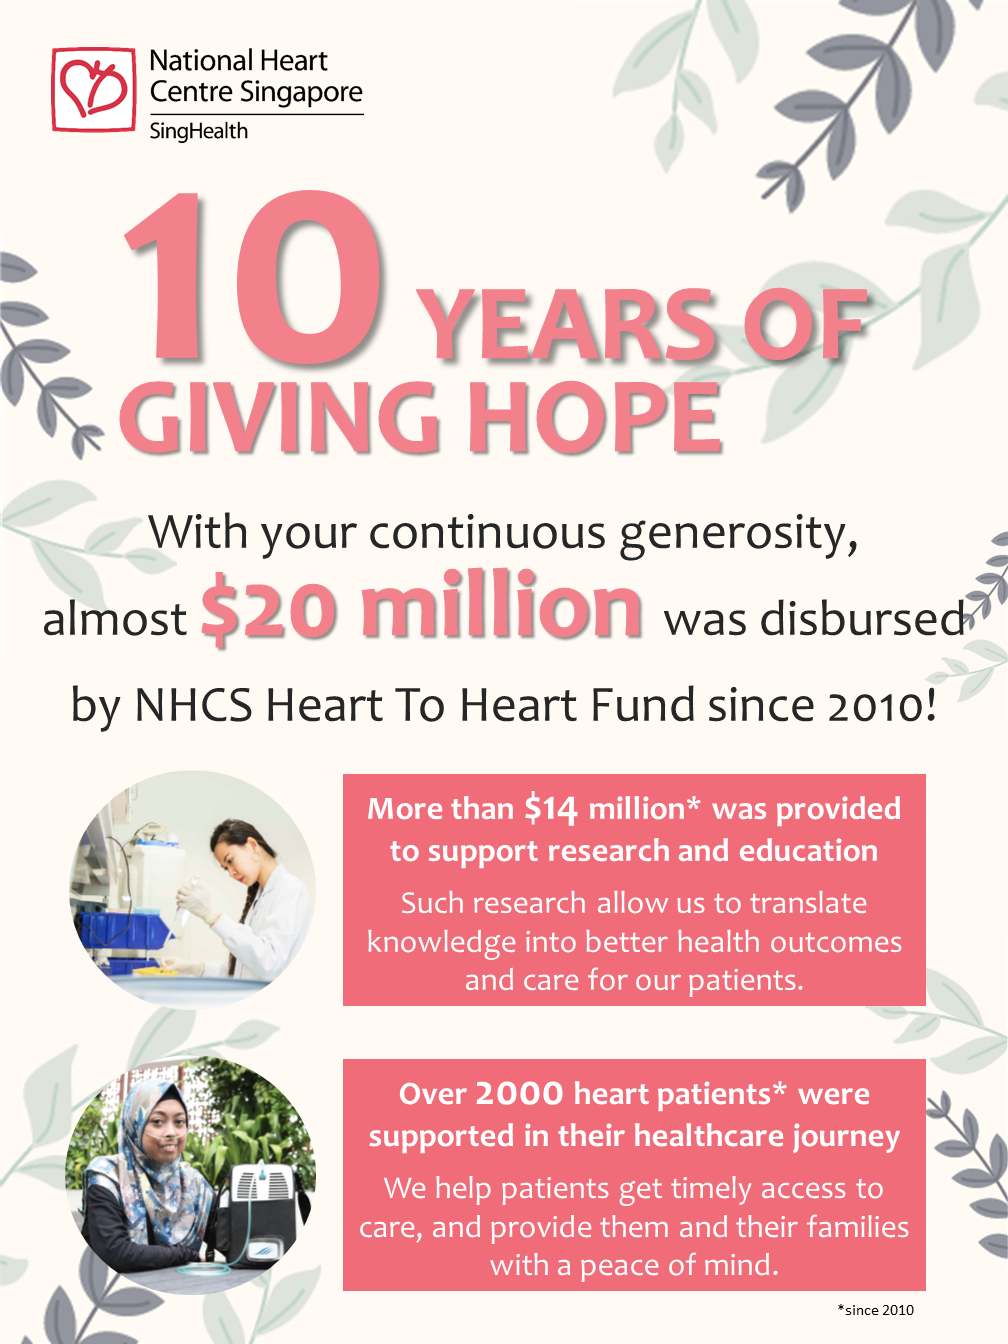 NHCS Fundraising Disbursement from 2010